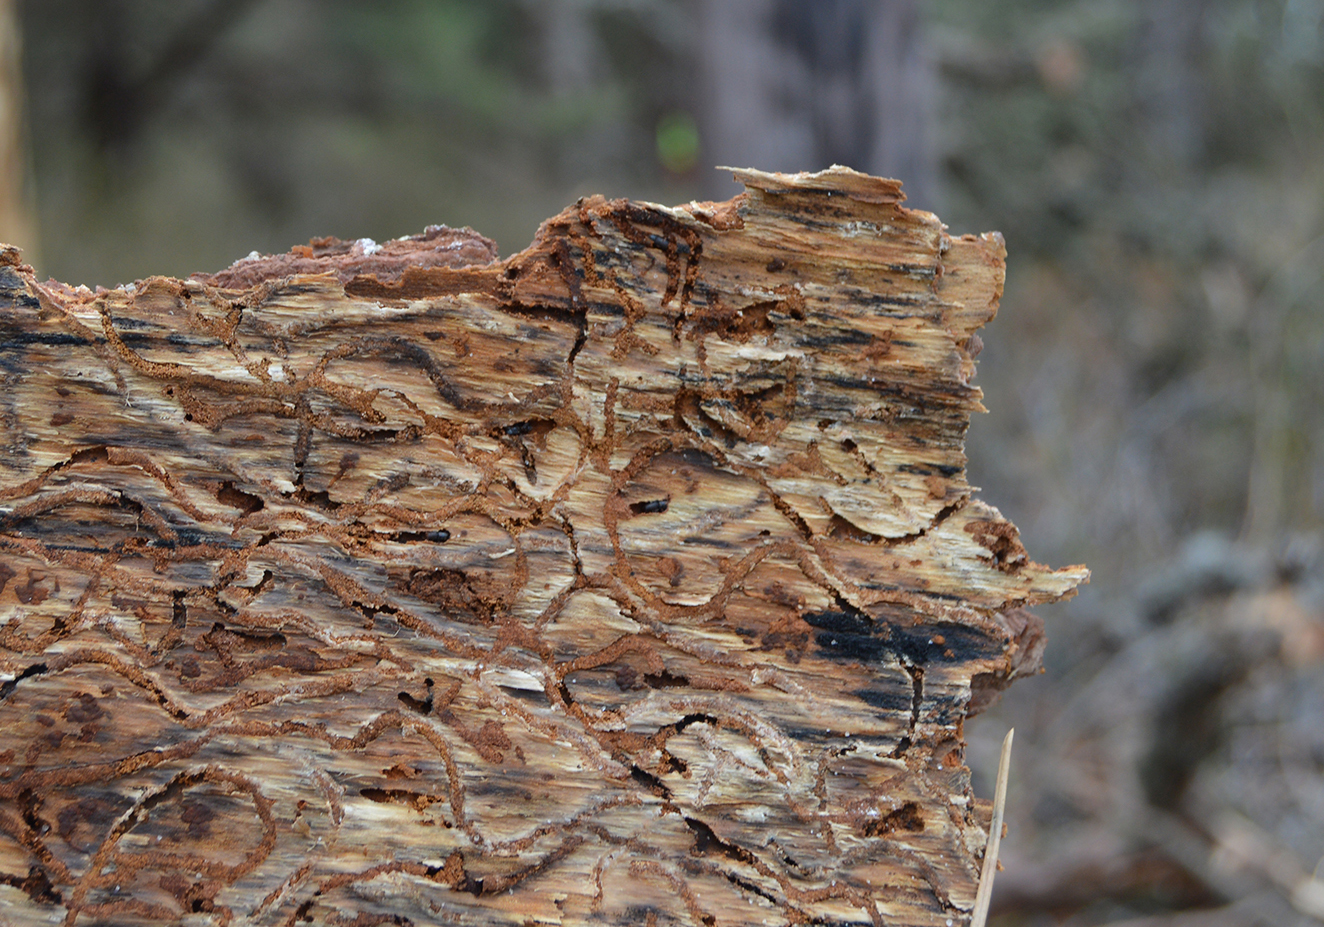 S-shaped southern pine beetle galleries in pine bark.